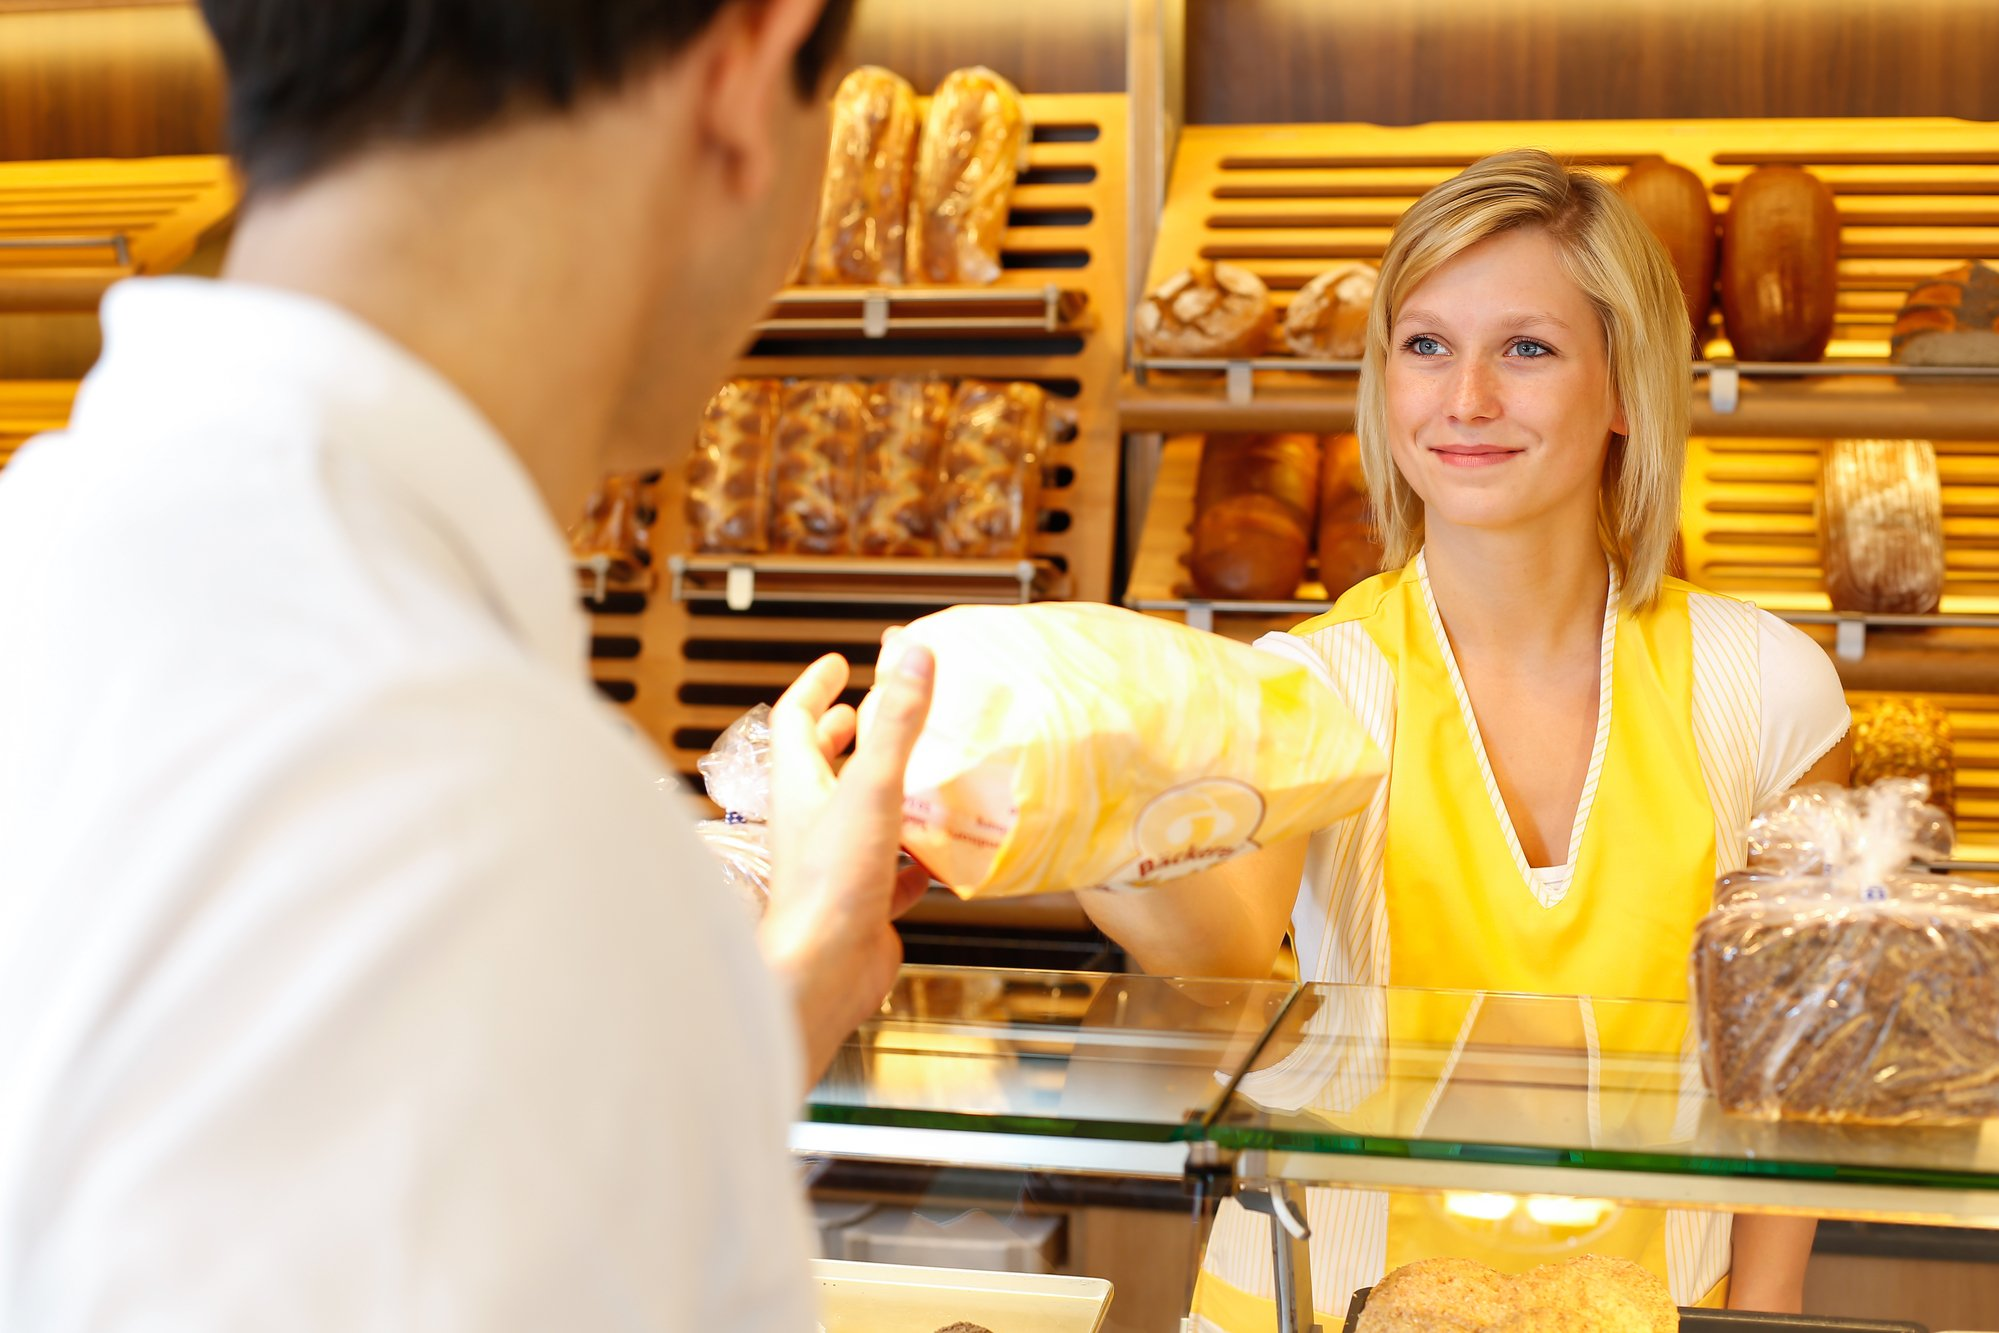 Bakery Business Plan & Operations